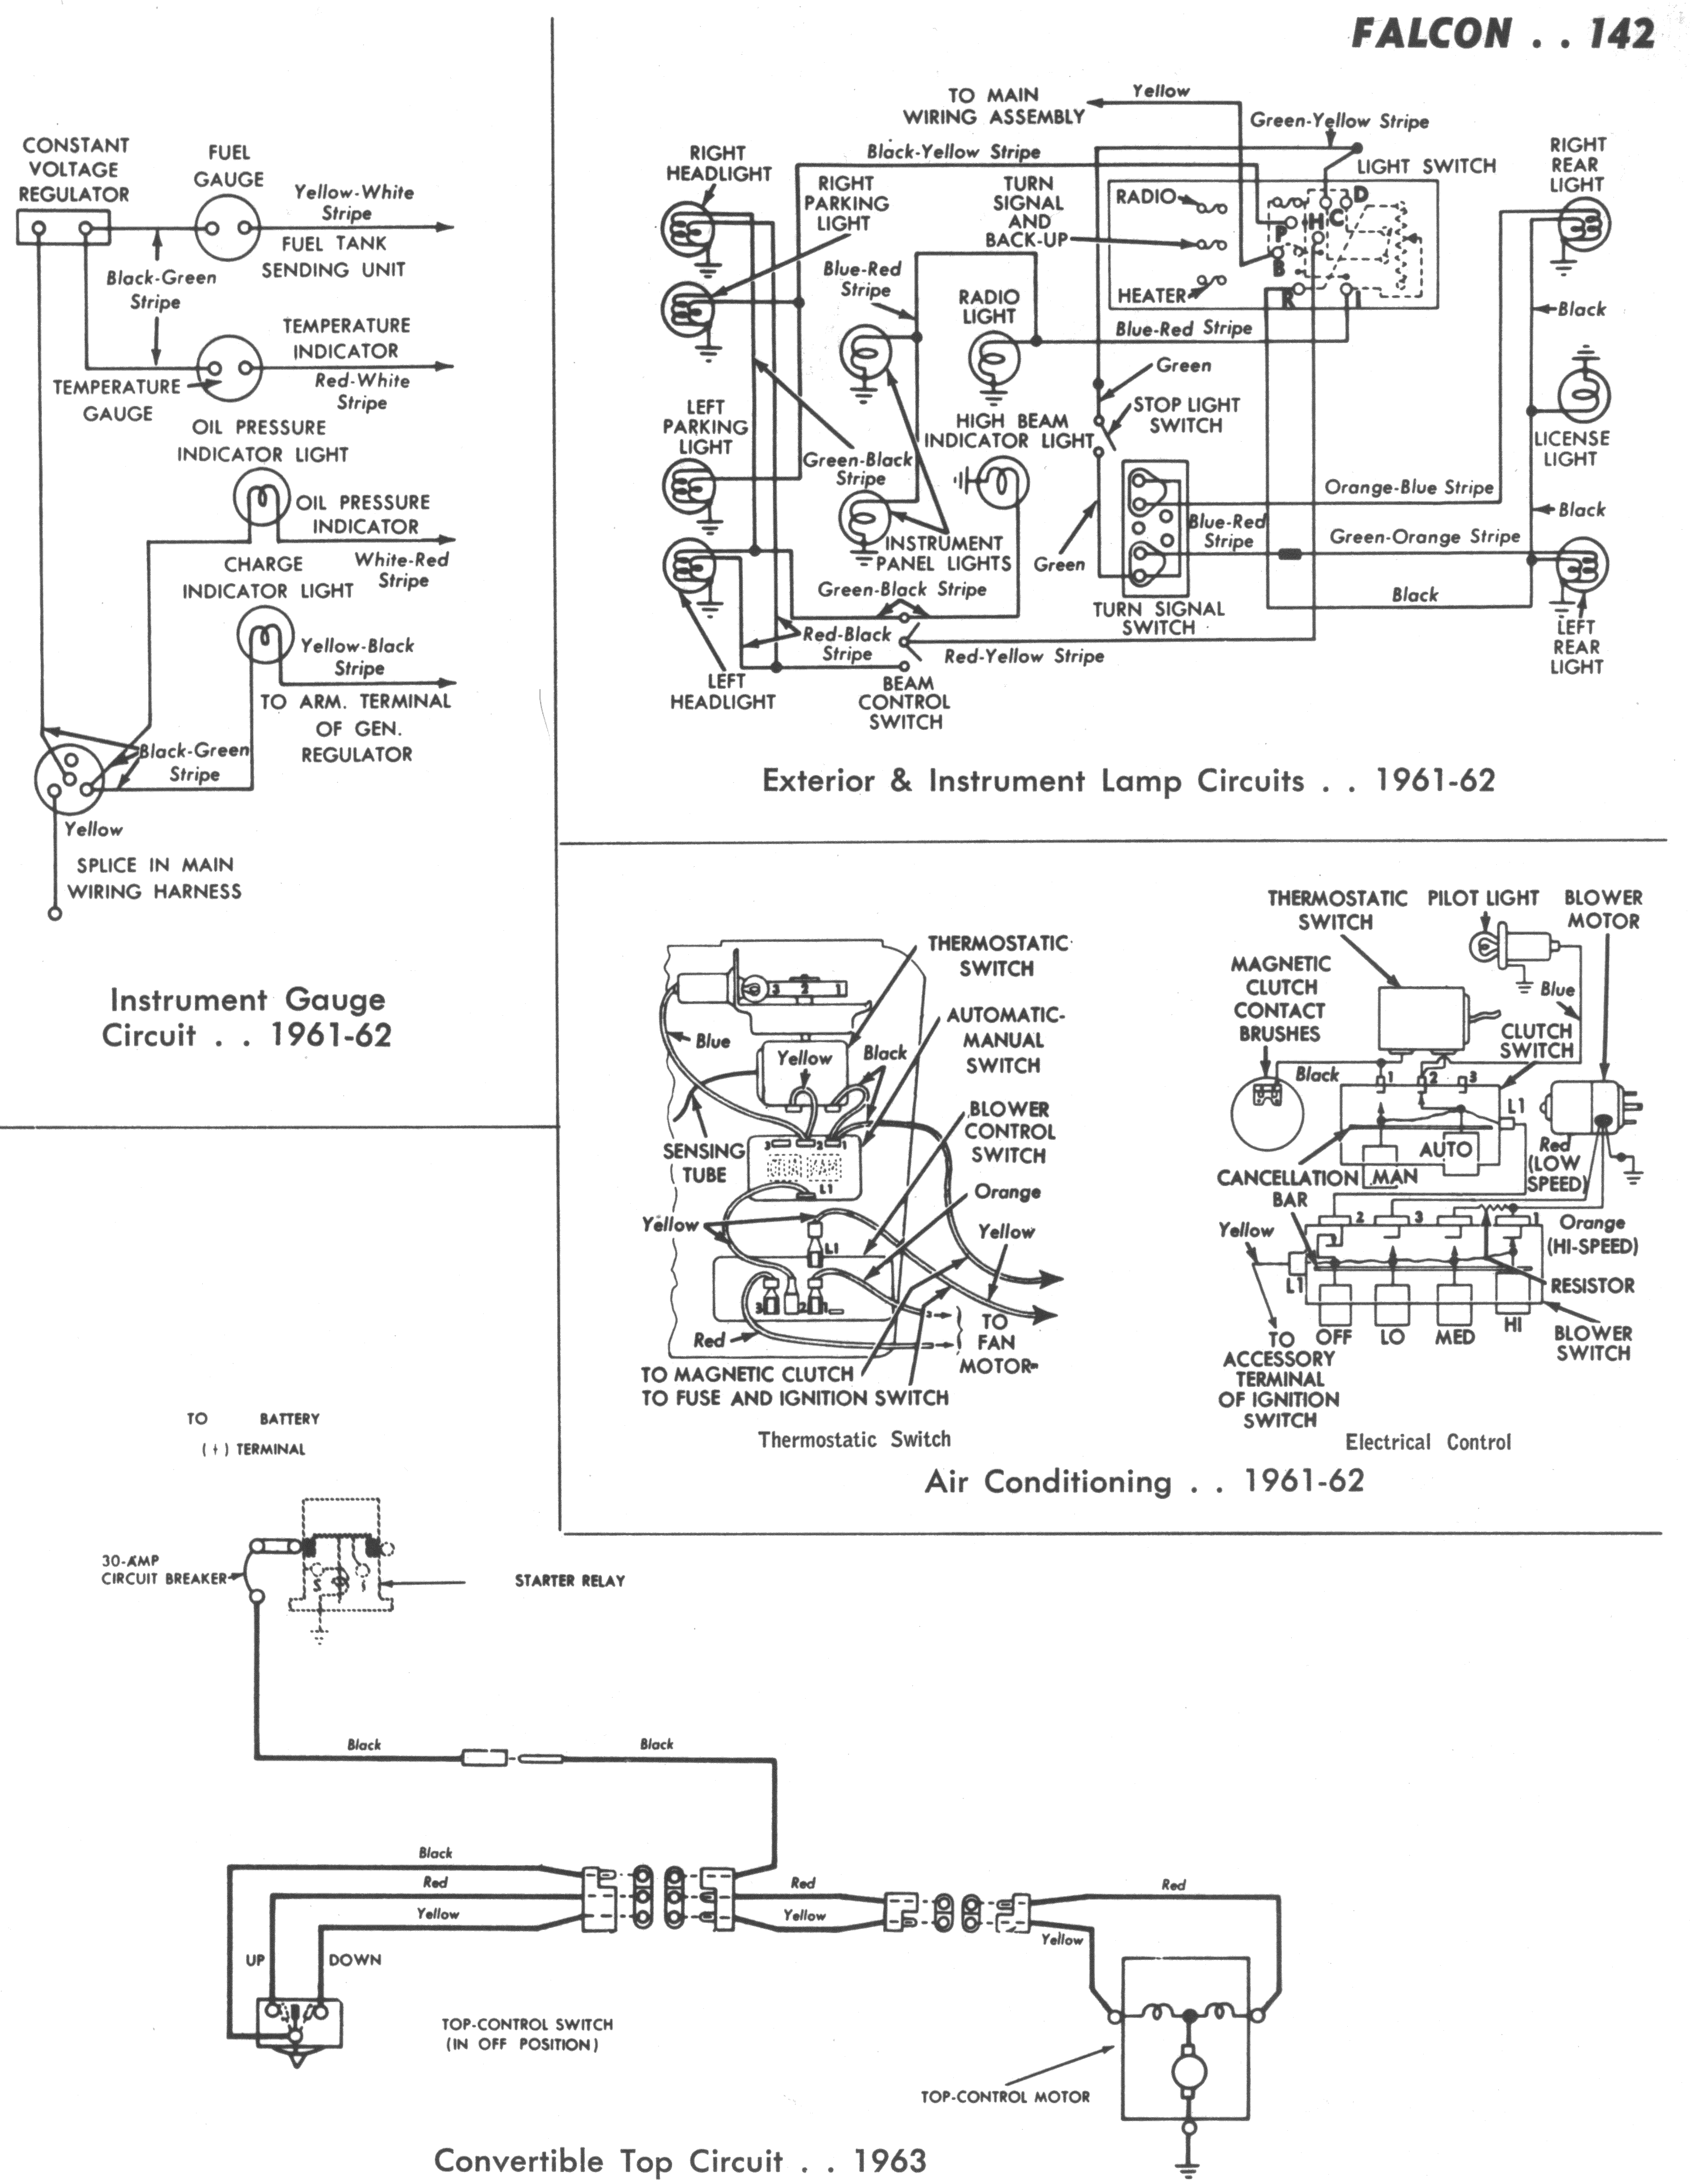 1951 mercury turn signal wiring diagram schematic - inf3 for pickups wiring  diagrams - jeepe-jimny.holden-commodore.jeanjaures37.fr  wiring diagram resource